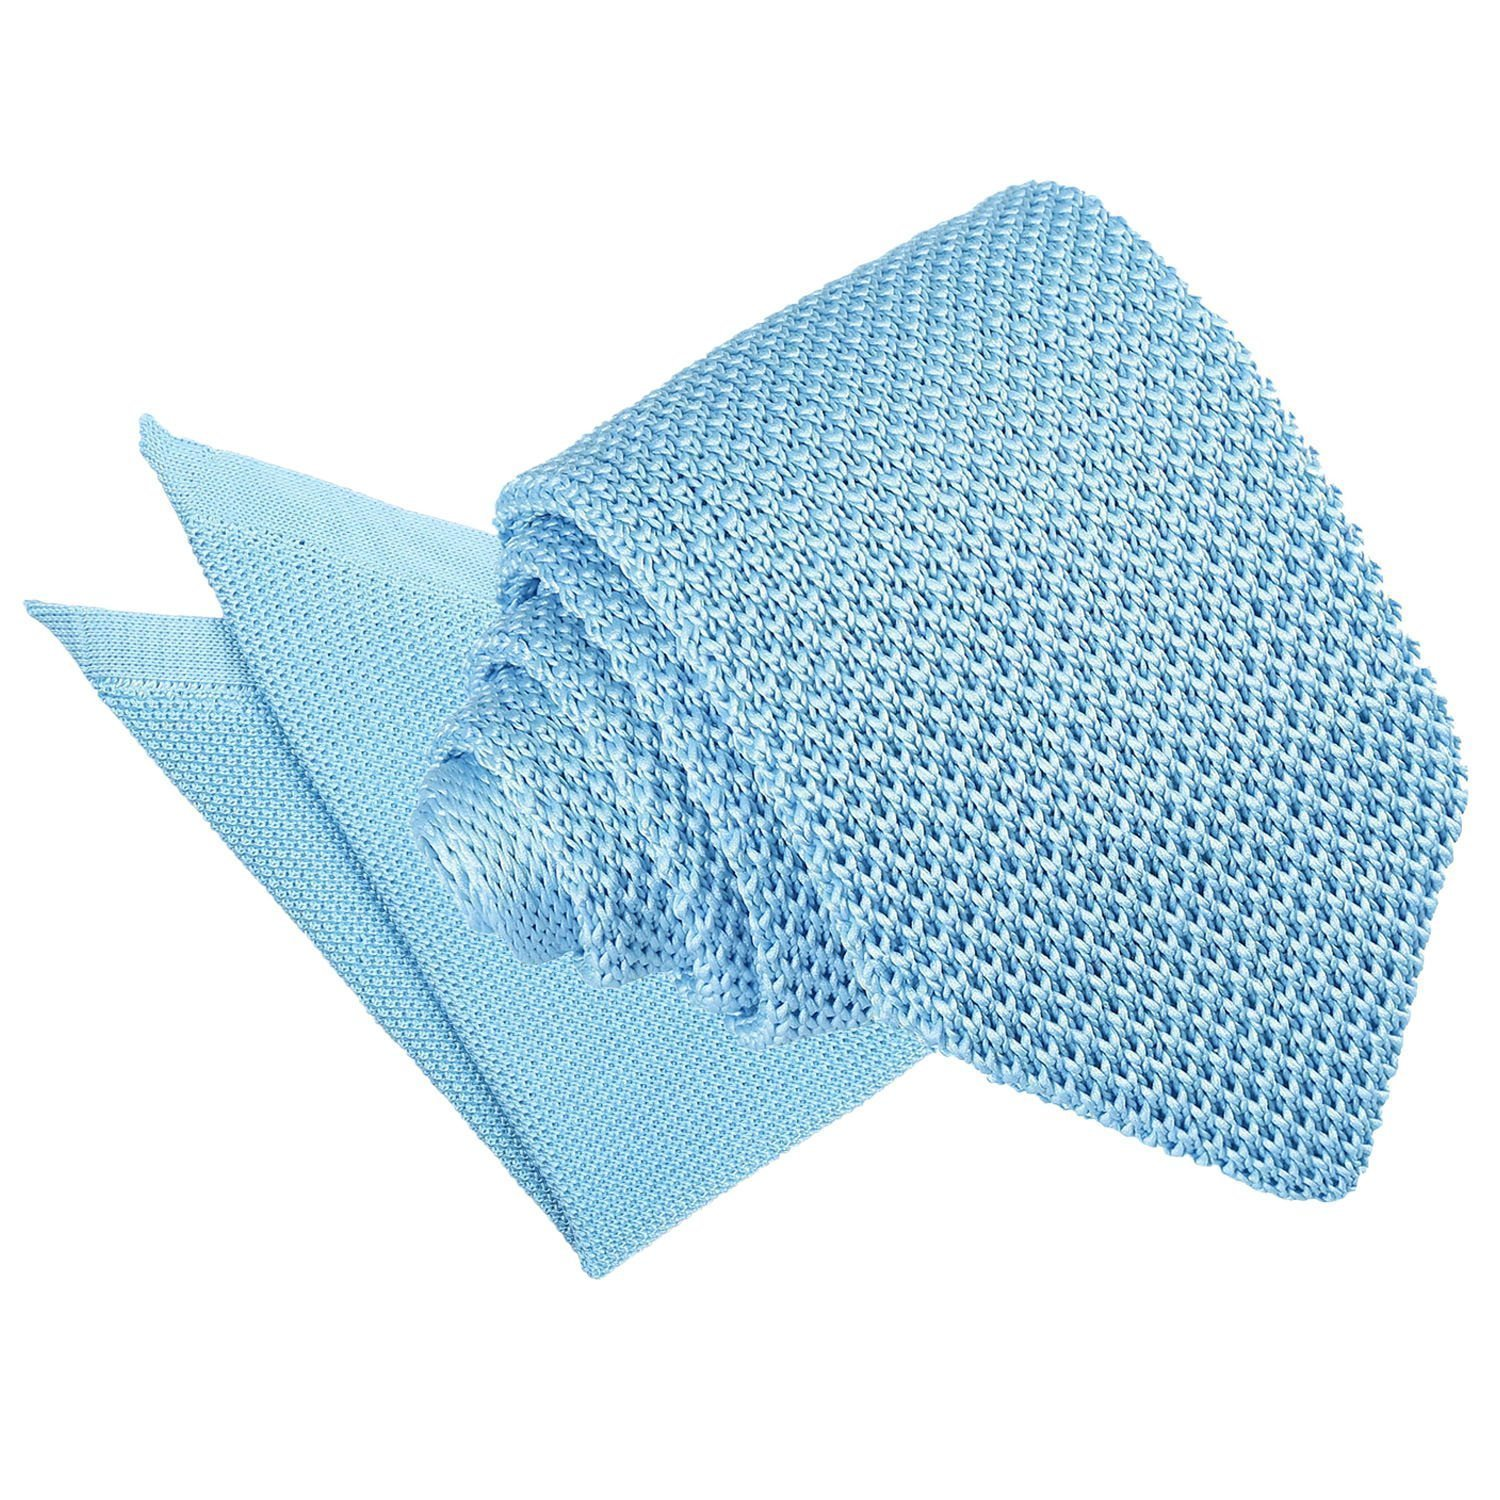 752dd3fecf76 DQT Knit Knitted Plain Baby Blue Casual Men's Slim Tie Handkerchief ...